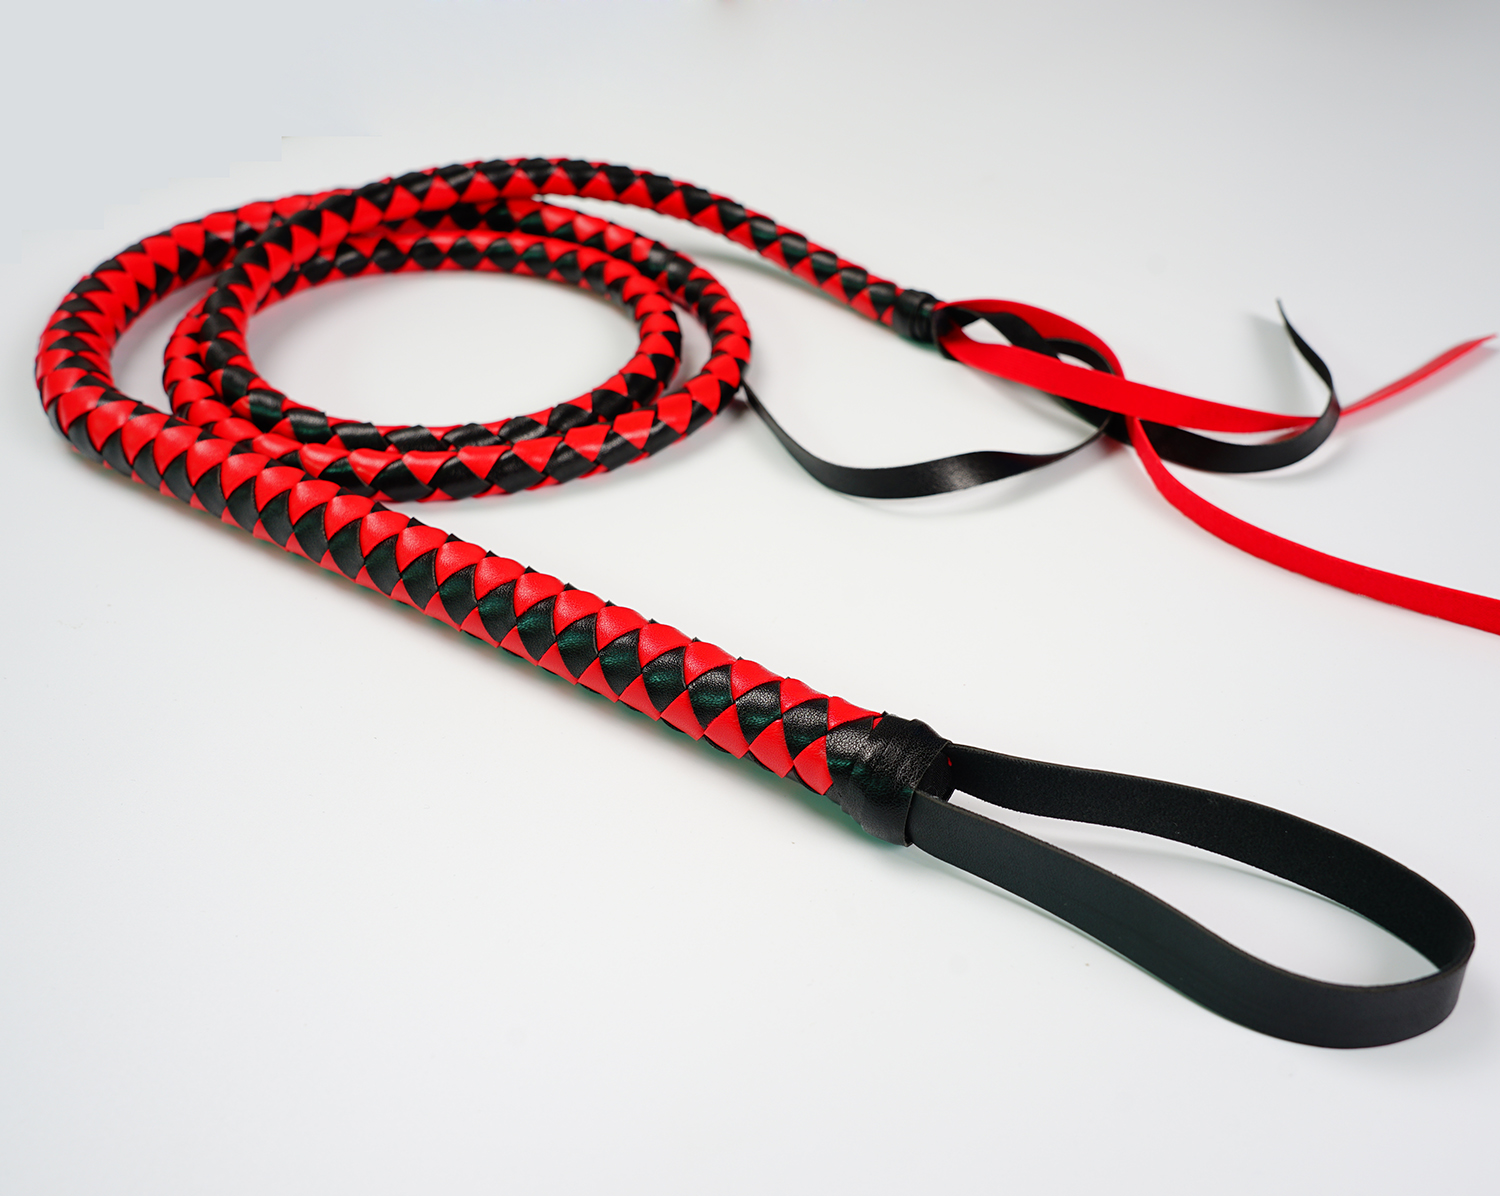 Leather Horse Whip Bull Whip, 4 Plait Bullwhip, 6 Feet - Color Choice: White Or Red